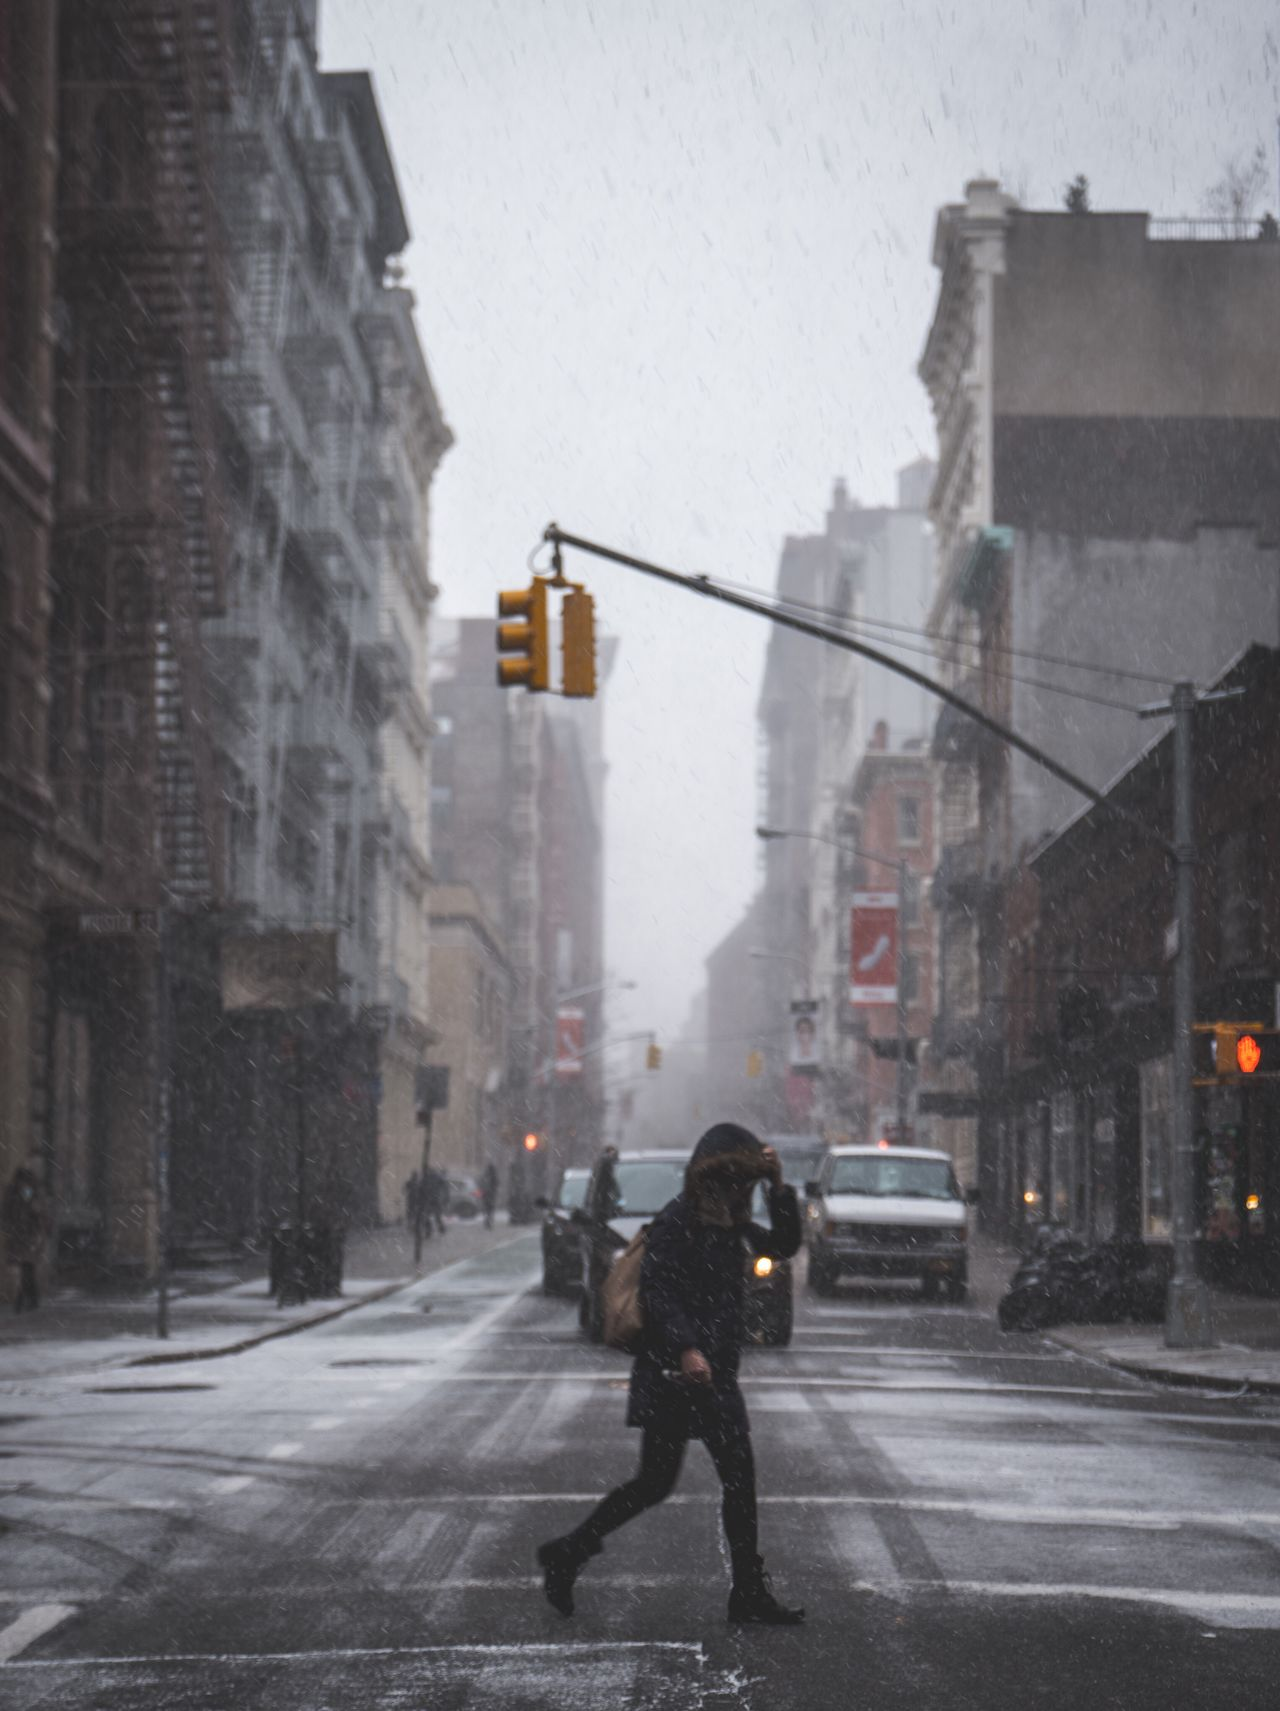 City Street Real People One Person Building Exterior Full Length Outdoors Built Structure Snow Snowing Lifestyles Rear View Winter Architecture City Life Cold Temperature Road Day One Man Only Men Finding New Frontiers